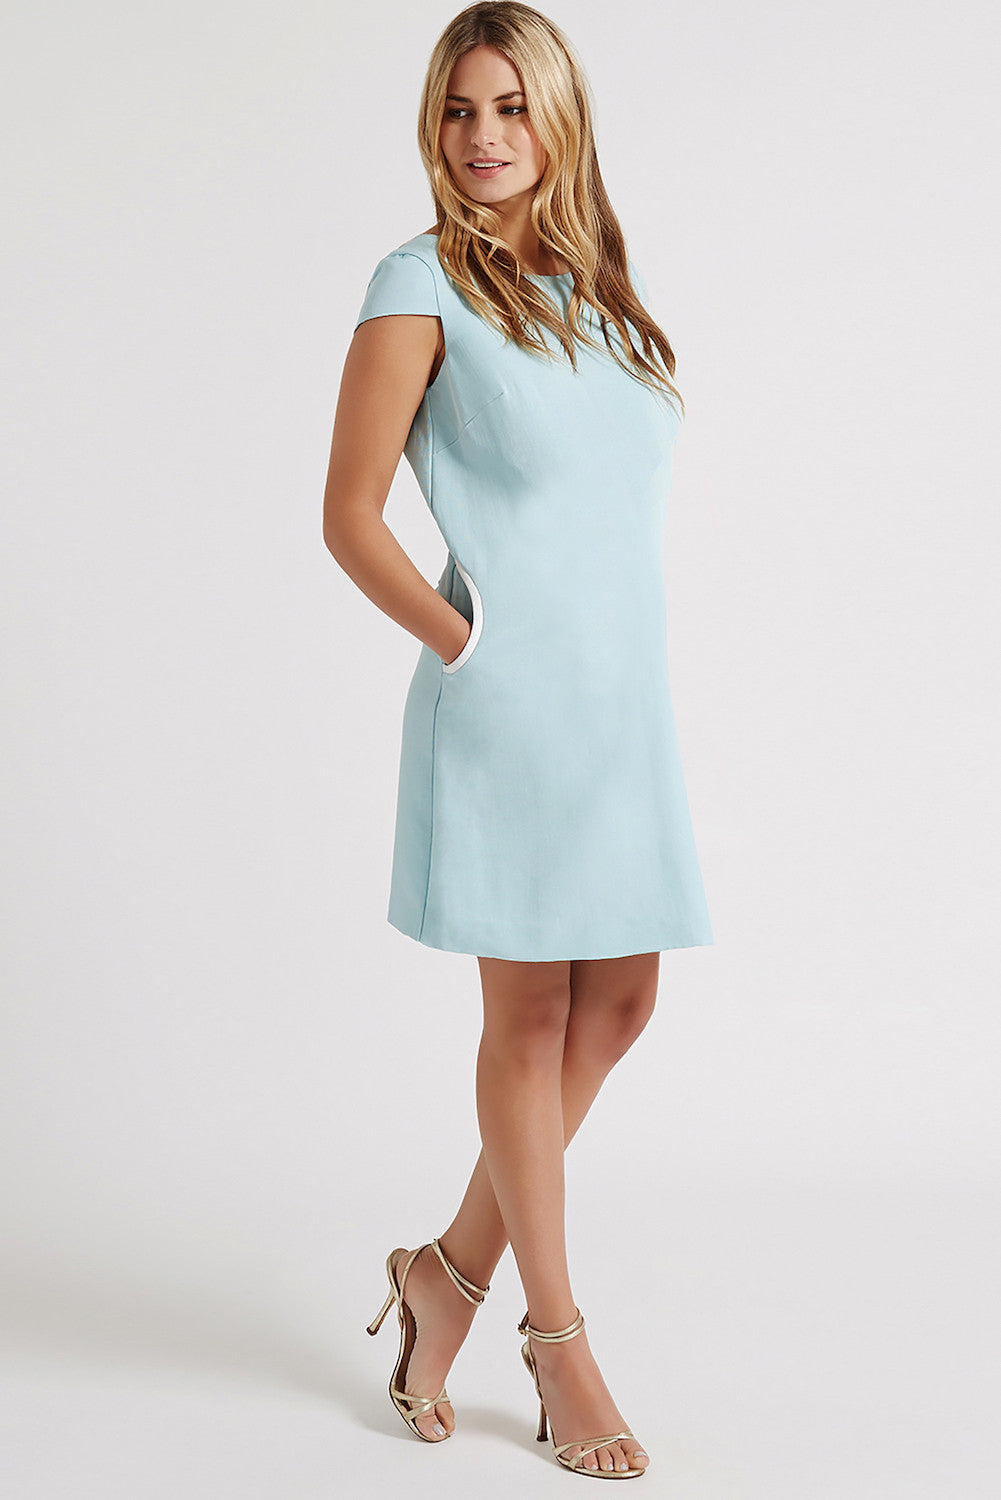 Viola Dress - Womenswear Outlet - Madderson London